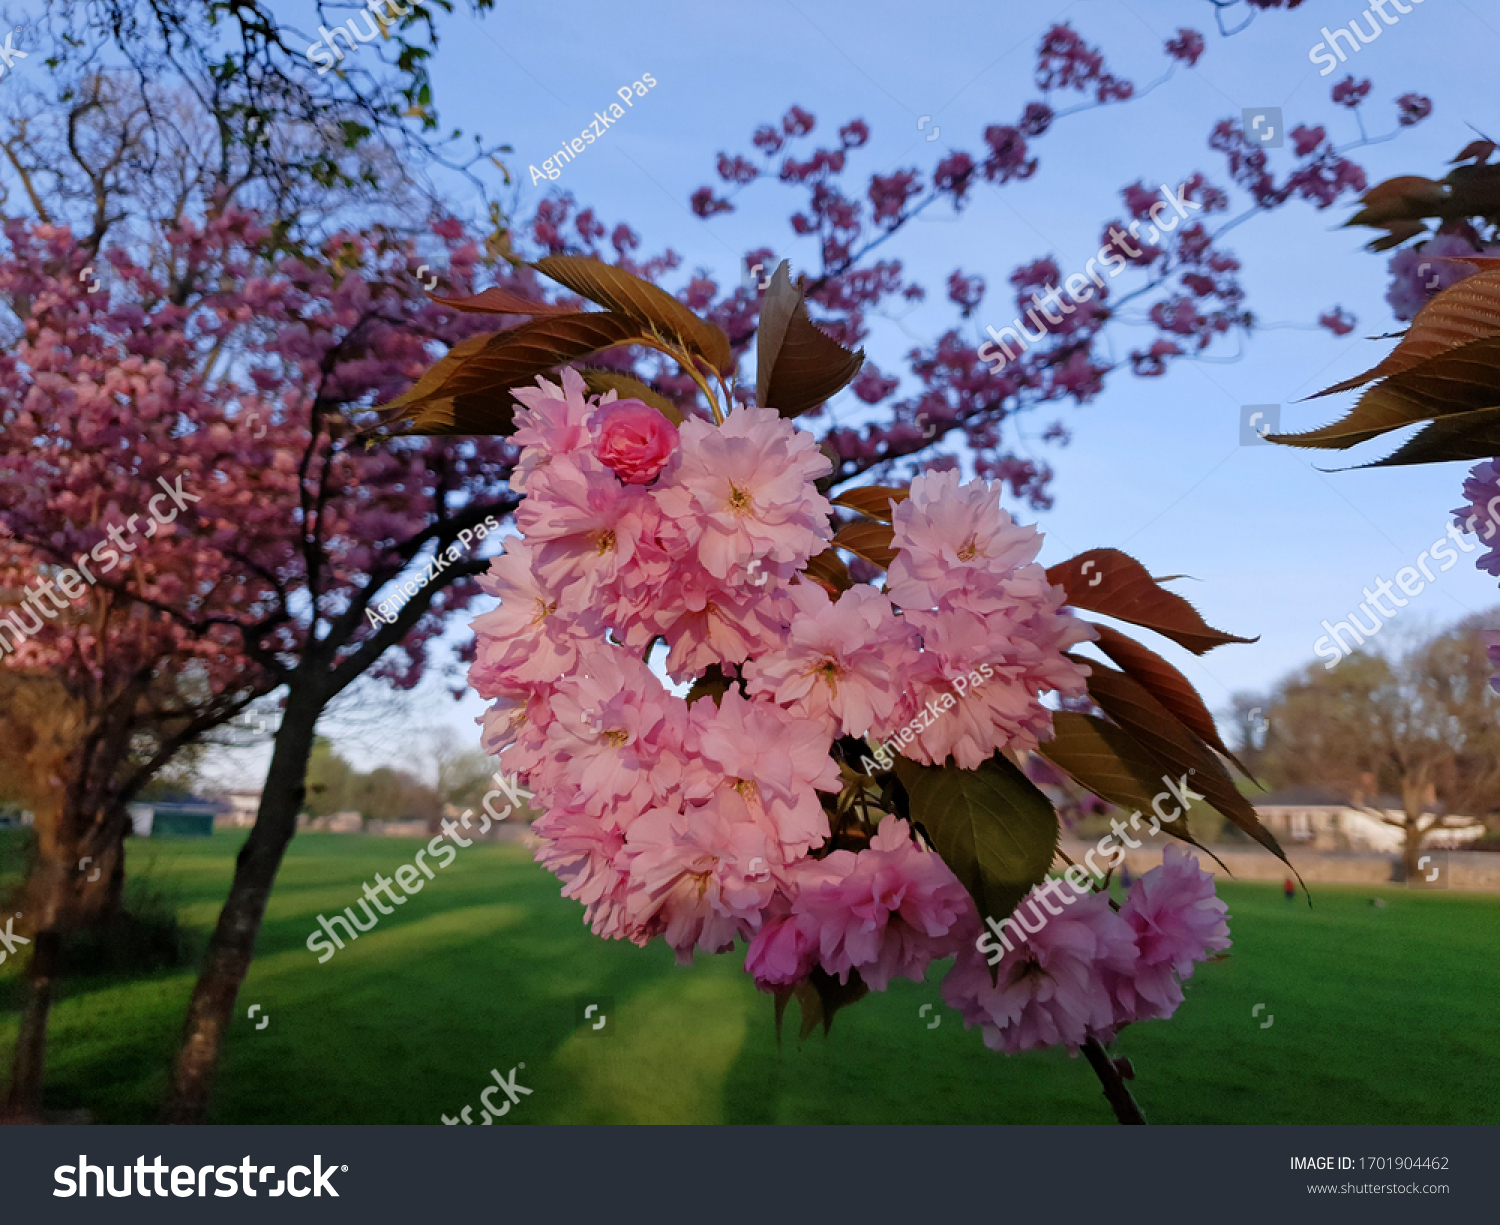 Selective focus shot of pink double cherry blossoms (Prunus serrulata Kanzan) in park illuminated by evening sunlight. Blue sky.